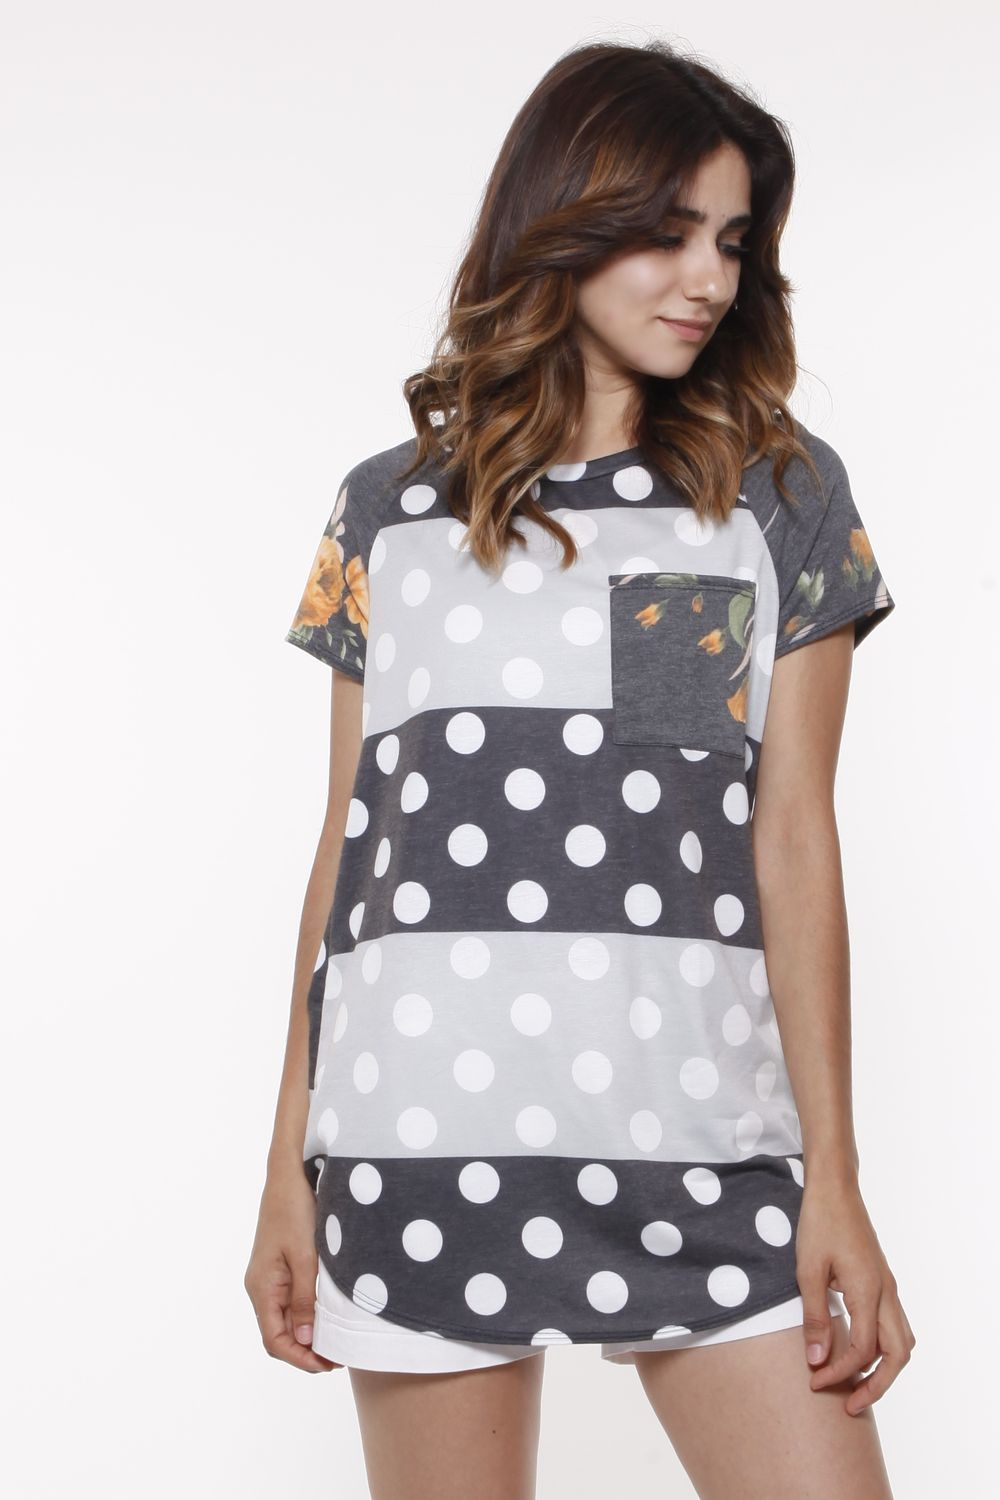 Charcoal & Grey Color-Block Polka Dot Top with Floral Pocket